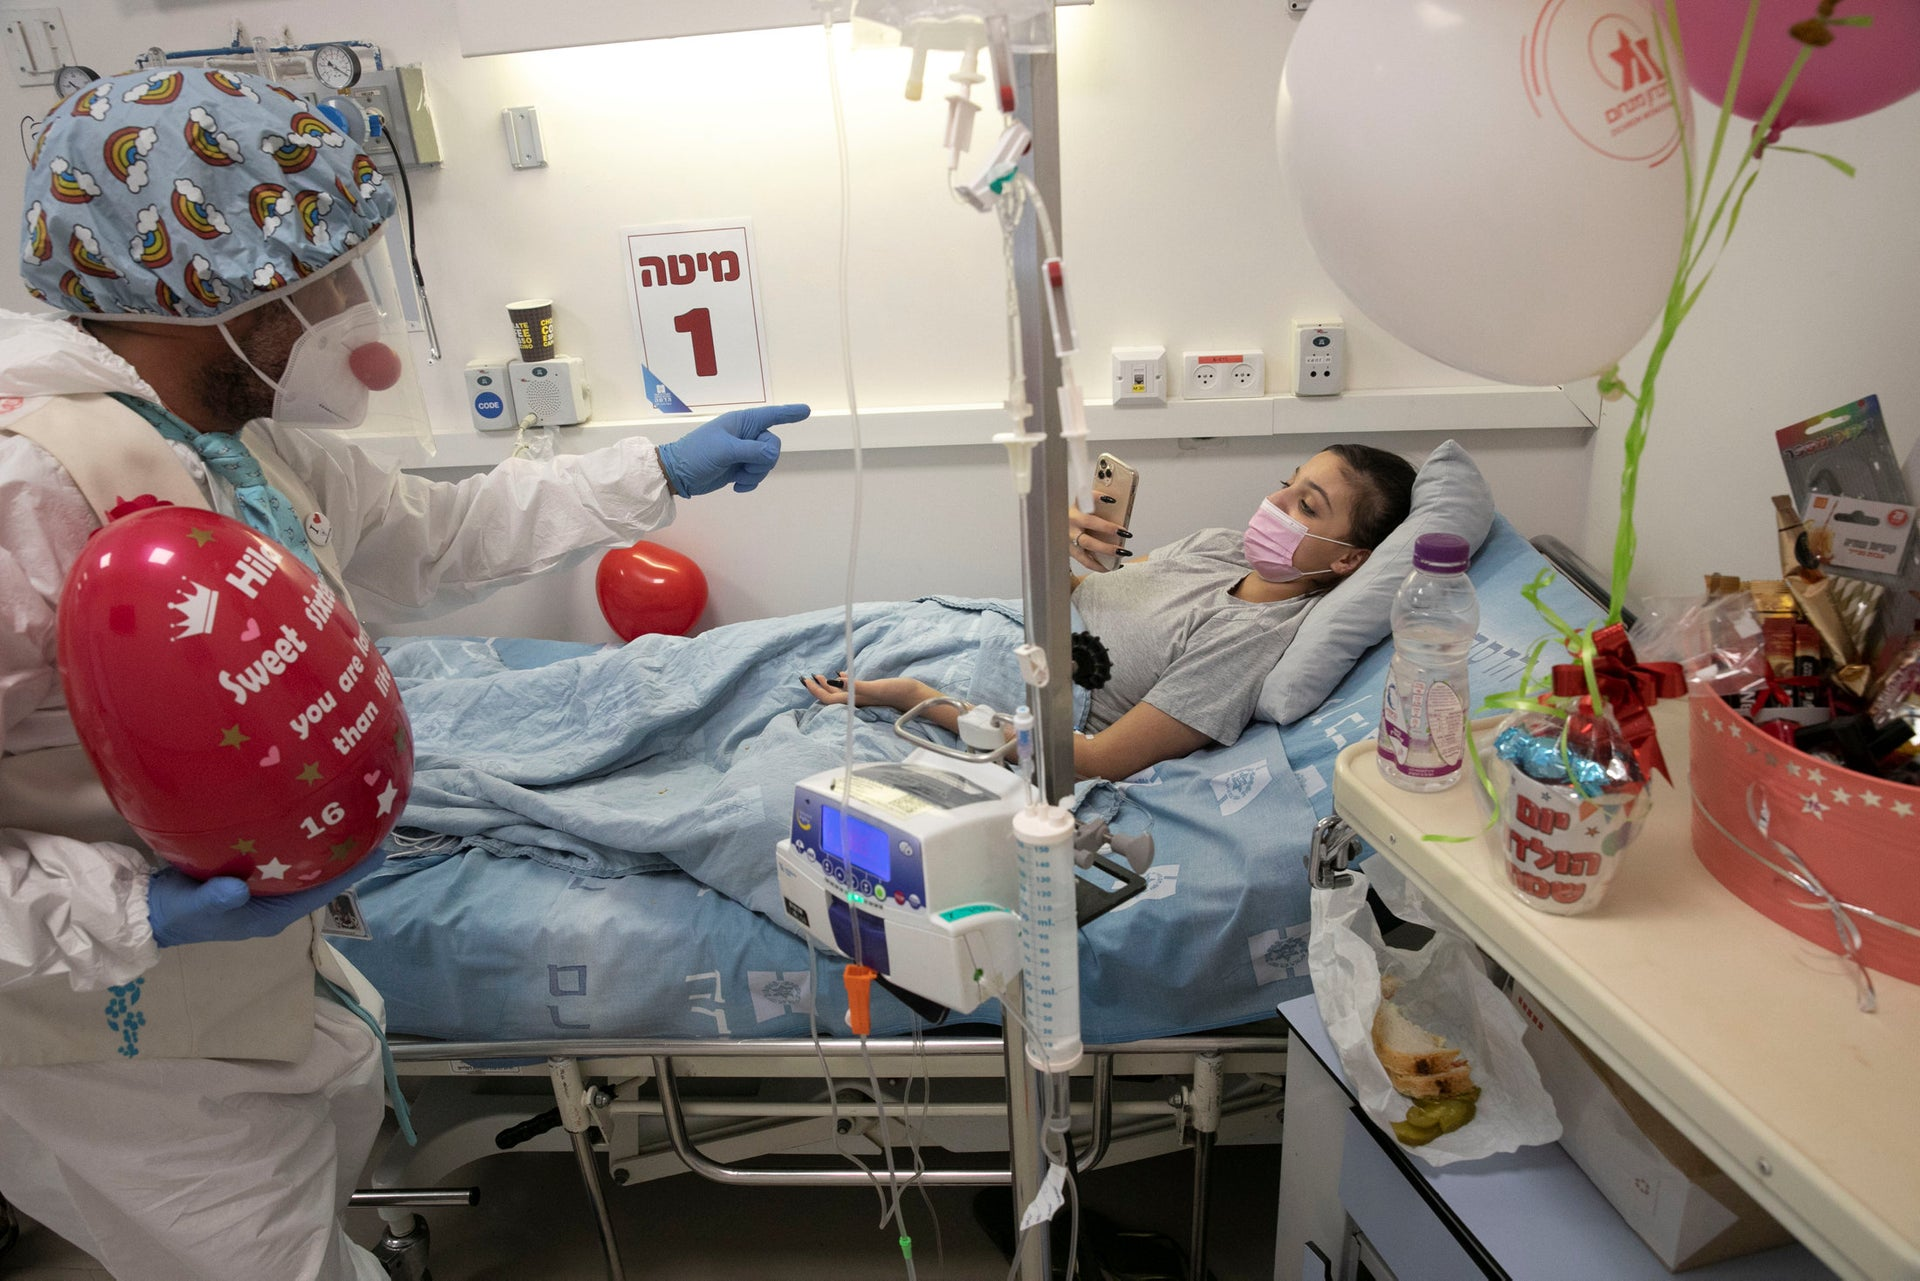 Medic clown David Barashi is visiting a young patient at the COVID-19 ward in Hadassah Ein Kerem Hospital in Jerusalem.